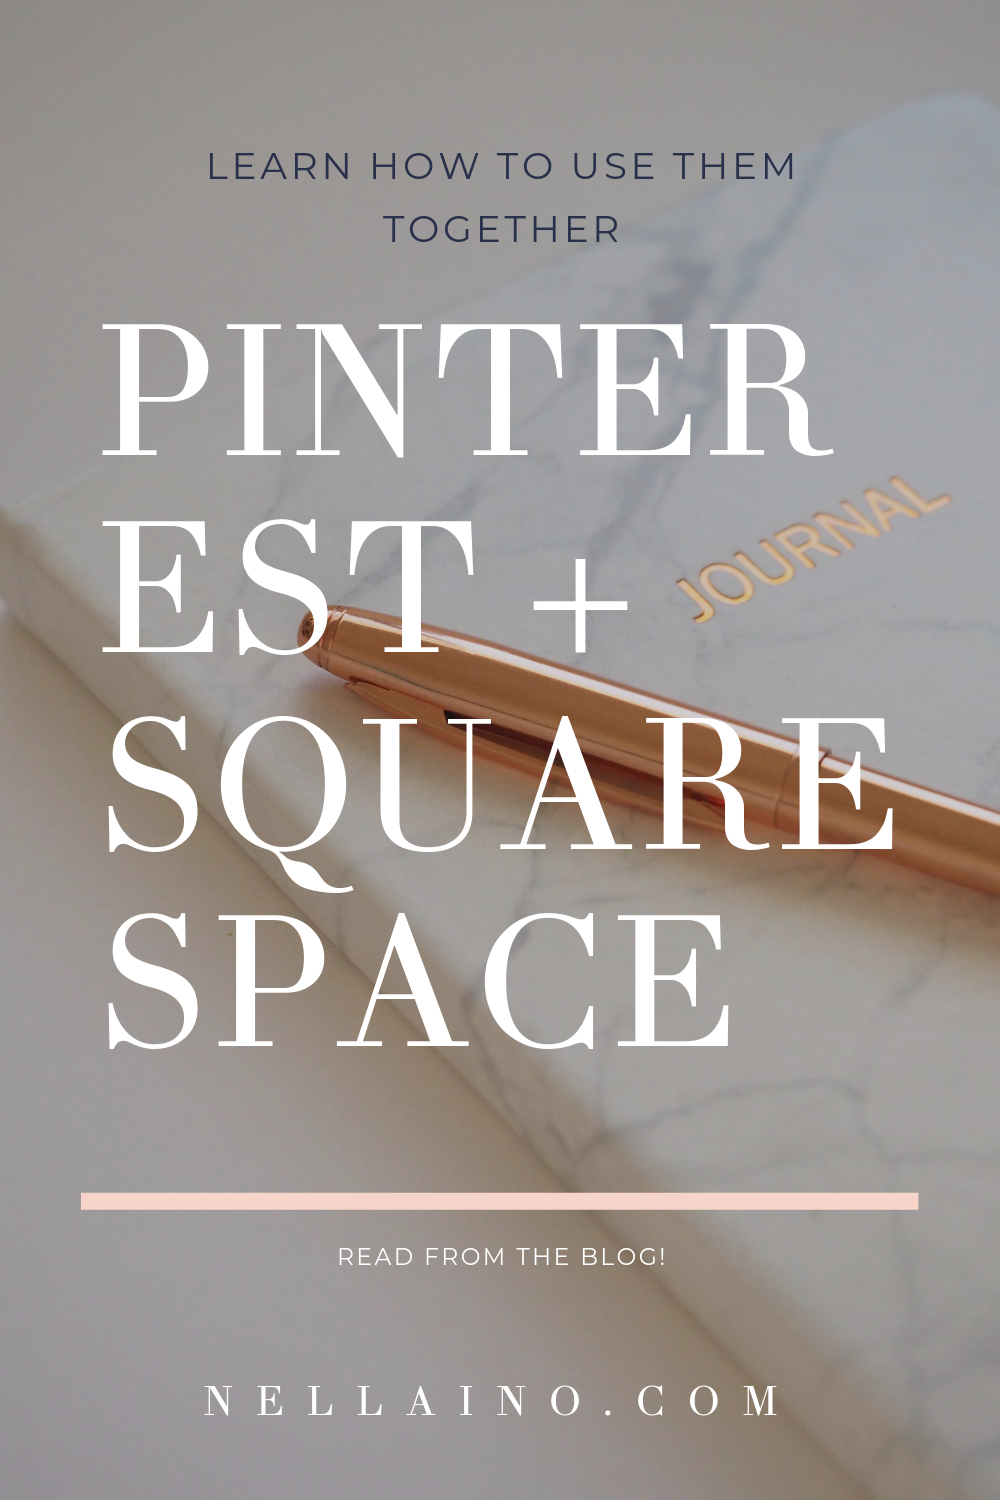 How to use Pinterest and Squarespace together? Learn my tips how to optimize your Squarespace website for Pinterest searches. www.nellaino.com/blog #squarespacetips #pinteresttips #website #nellaino